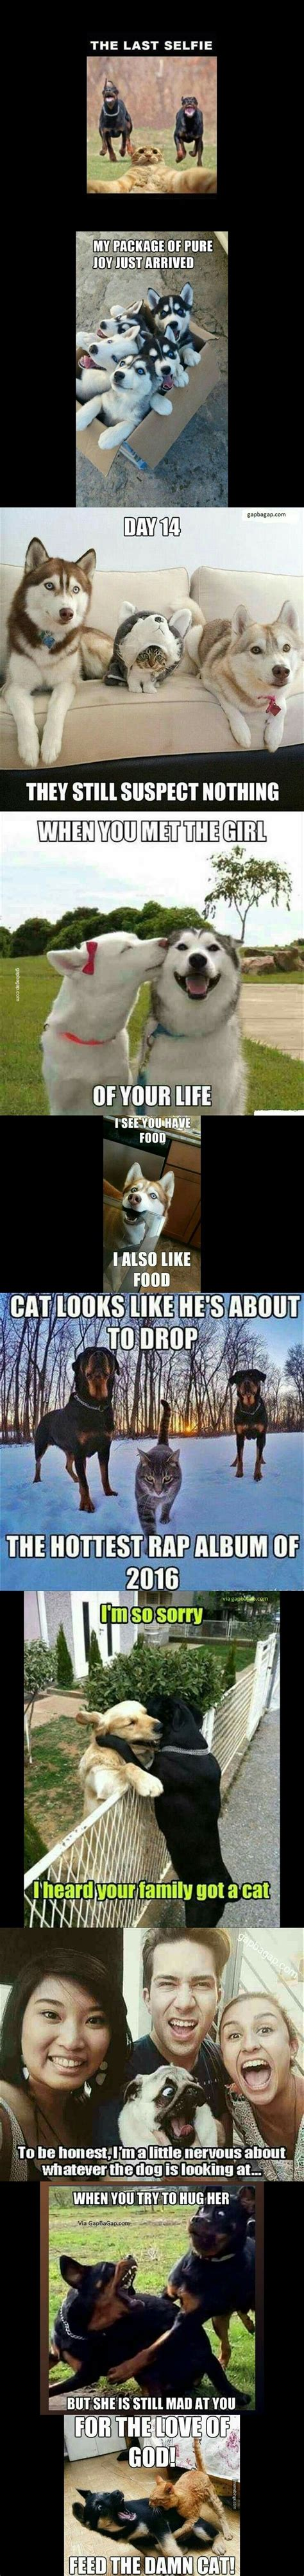 Funny Dog And Cat Memes - 17 best ideas about cat memes on pinterest funny cat